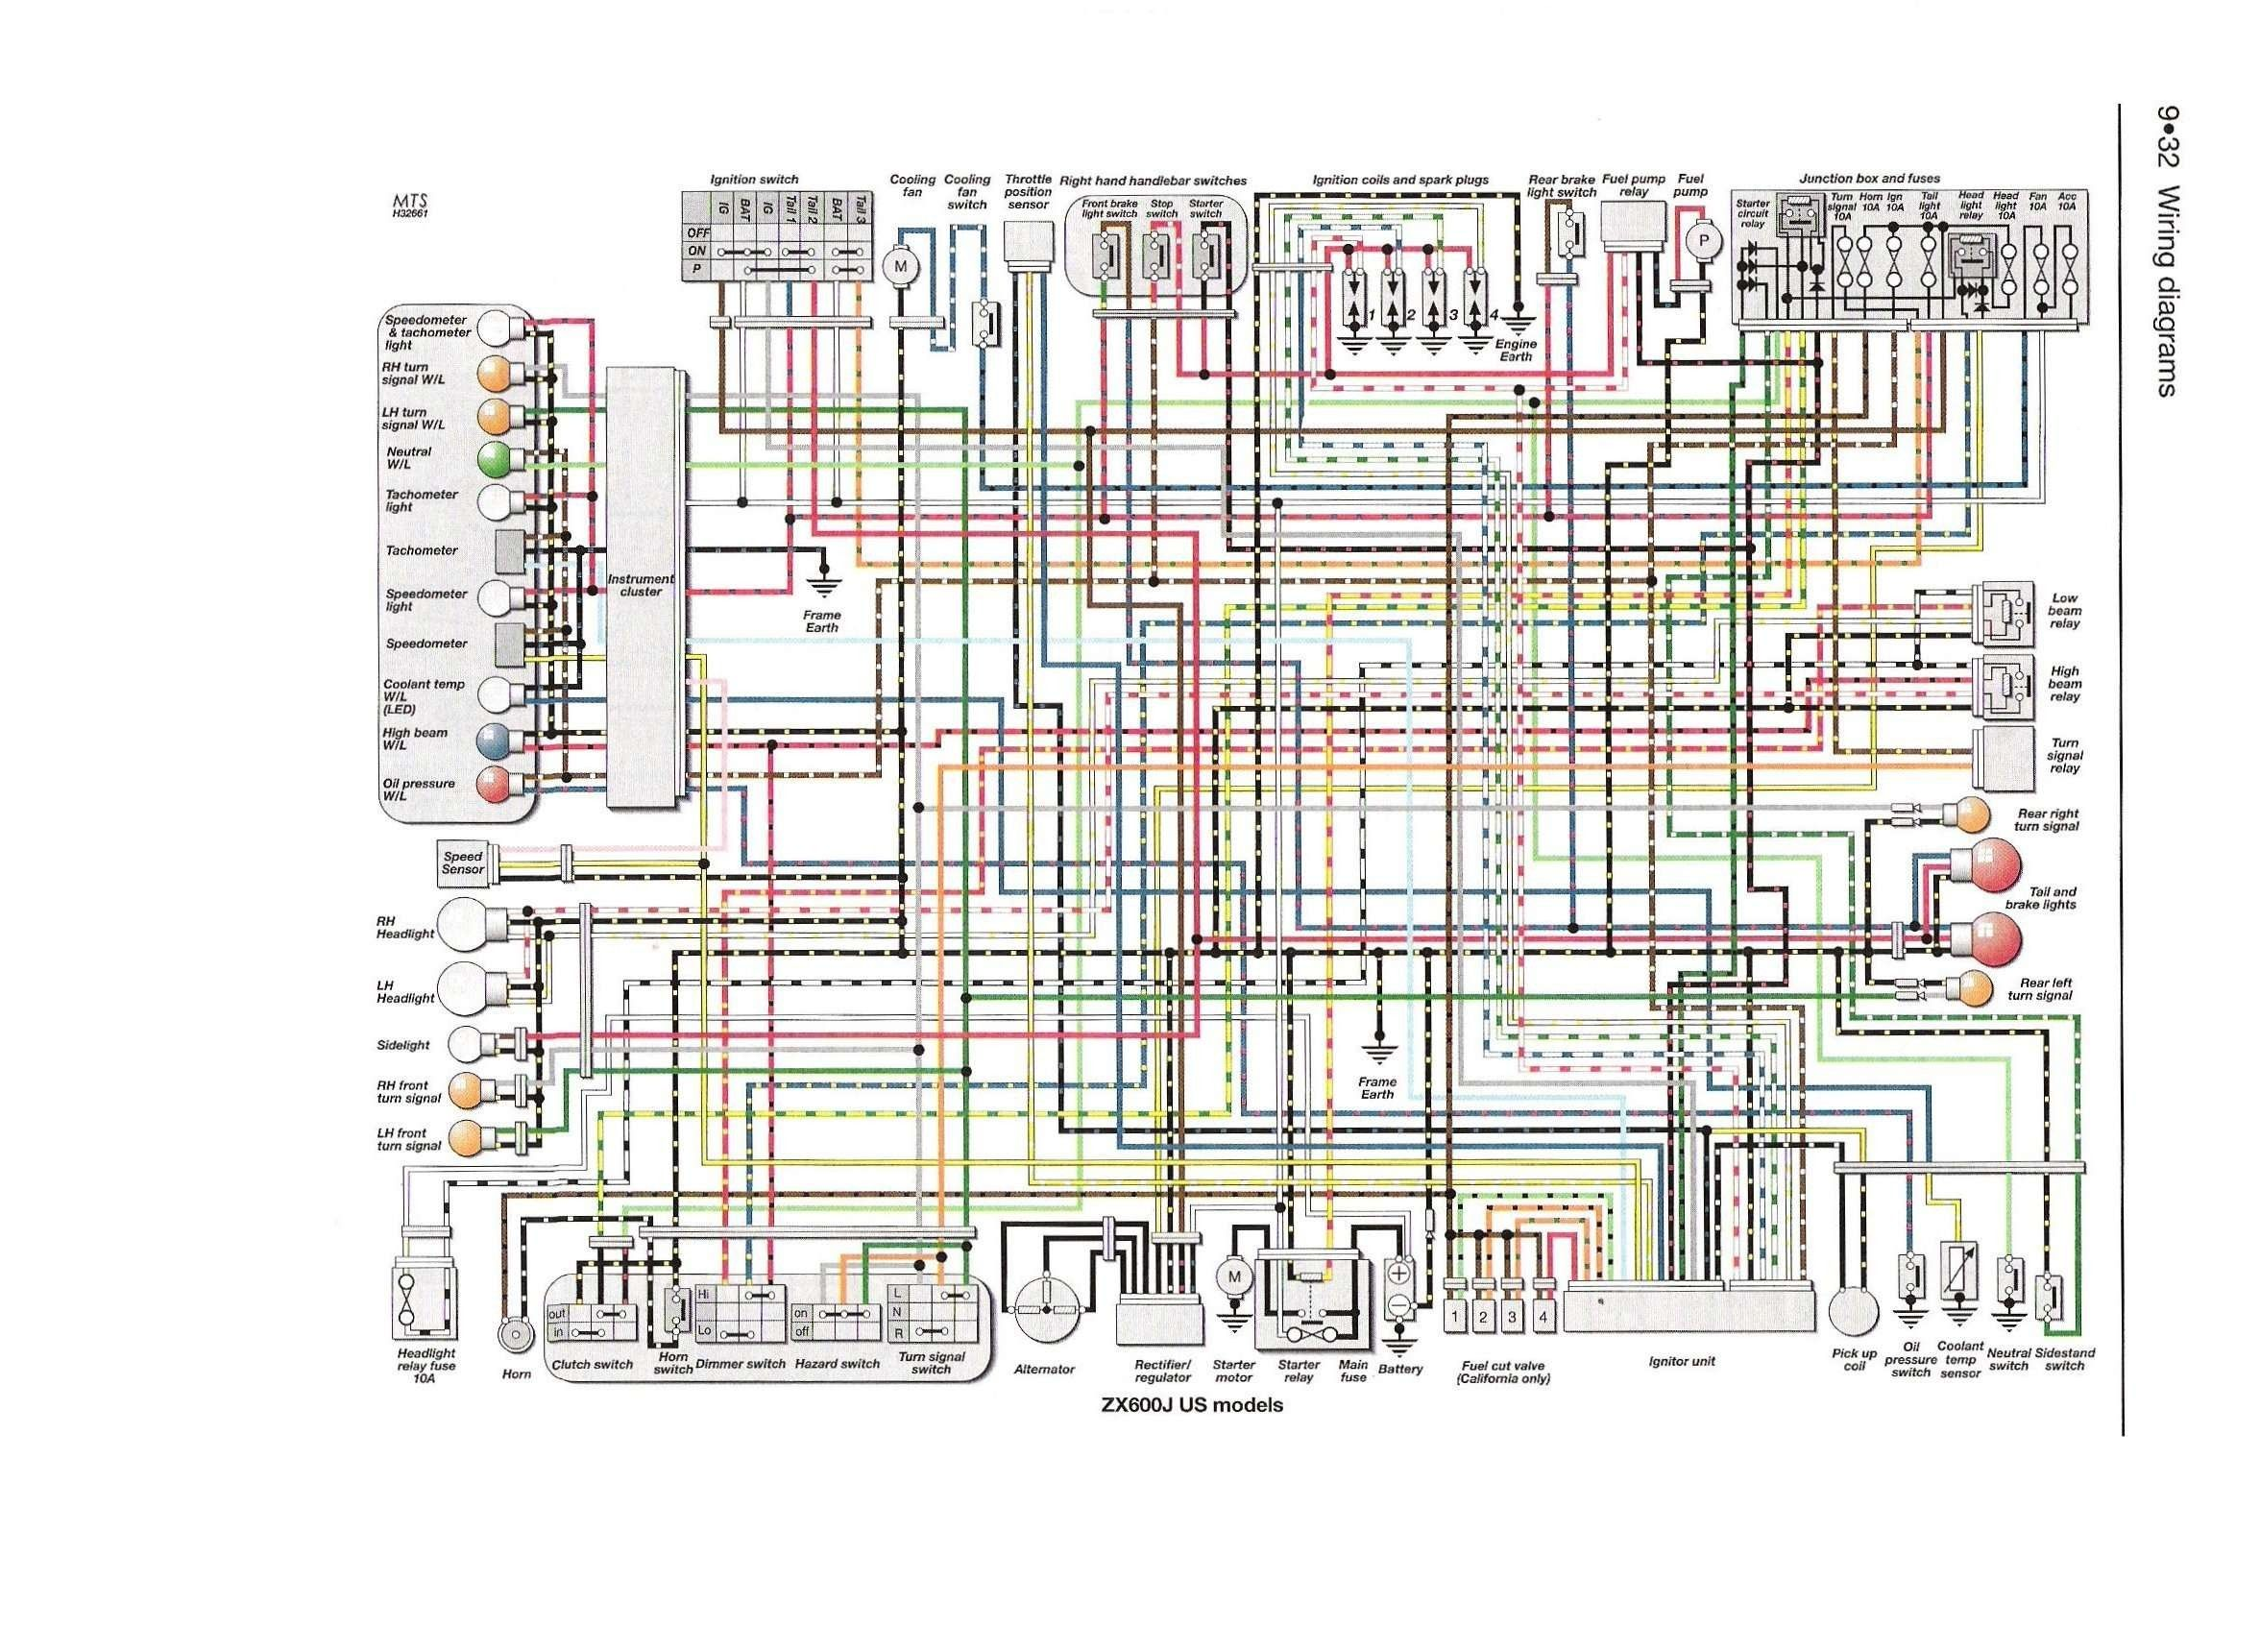 [WQZT_9871]  C58 Zx10 Wiring Diagram | Wiring Resources | Zx1000 Wiring Diagram |  | Wiring Resources